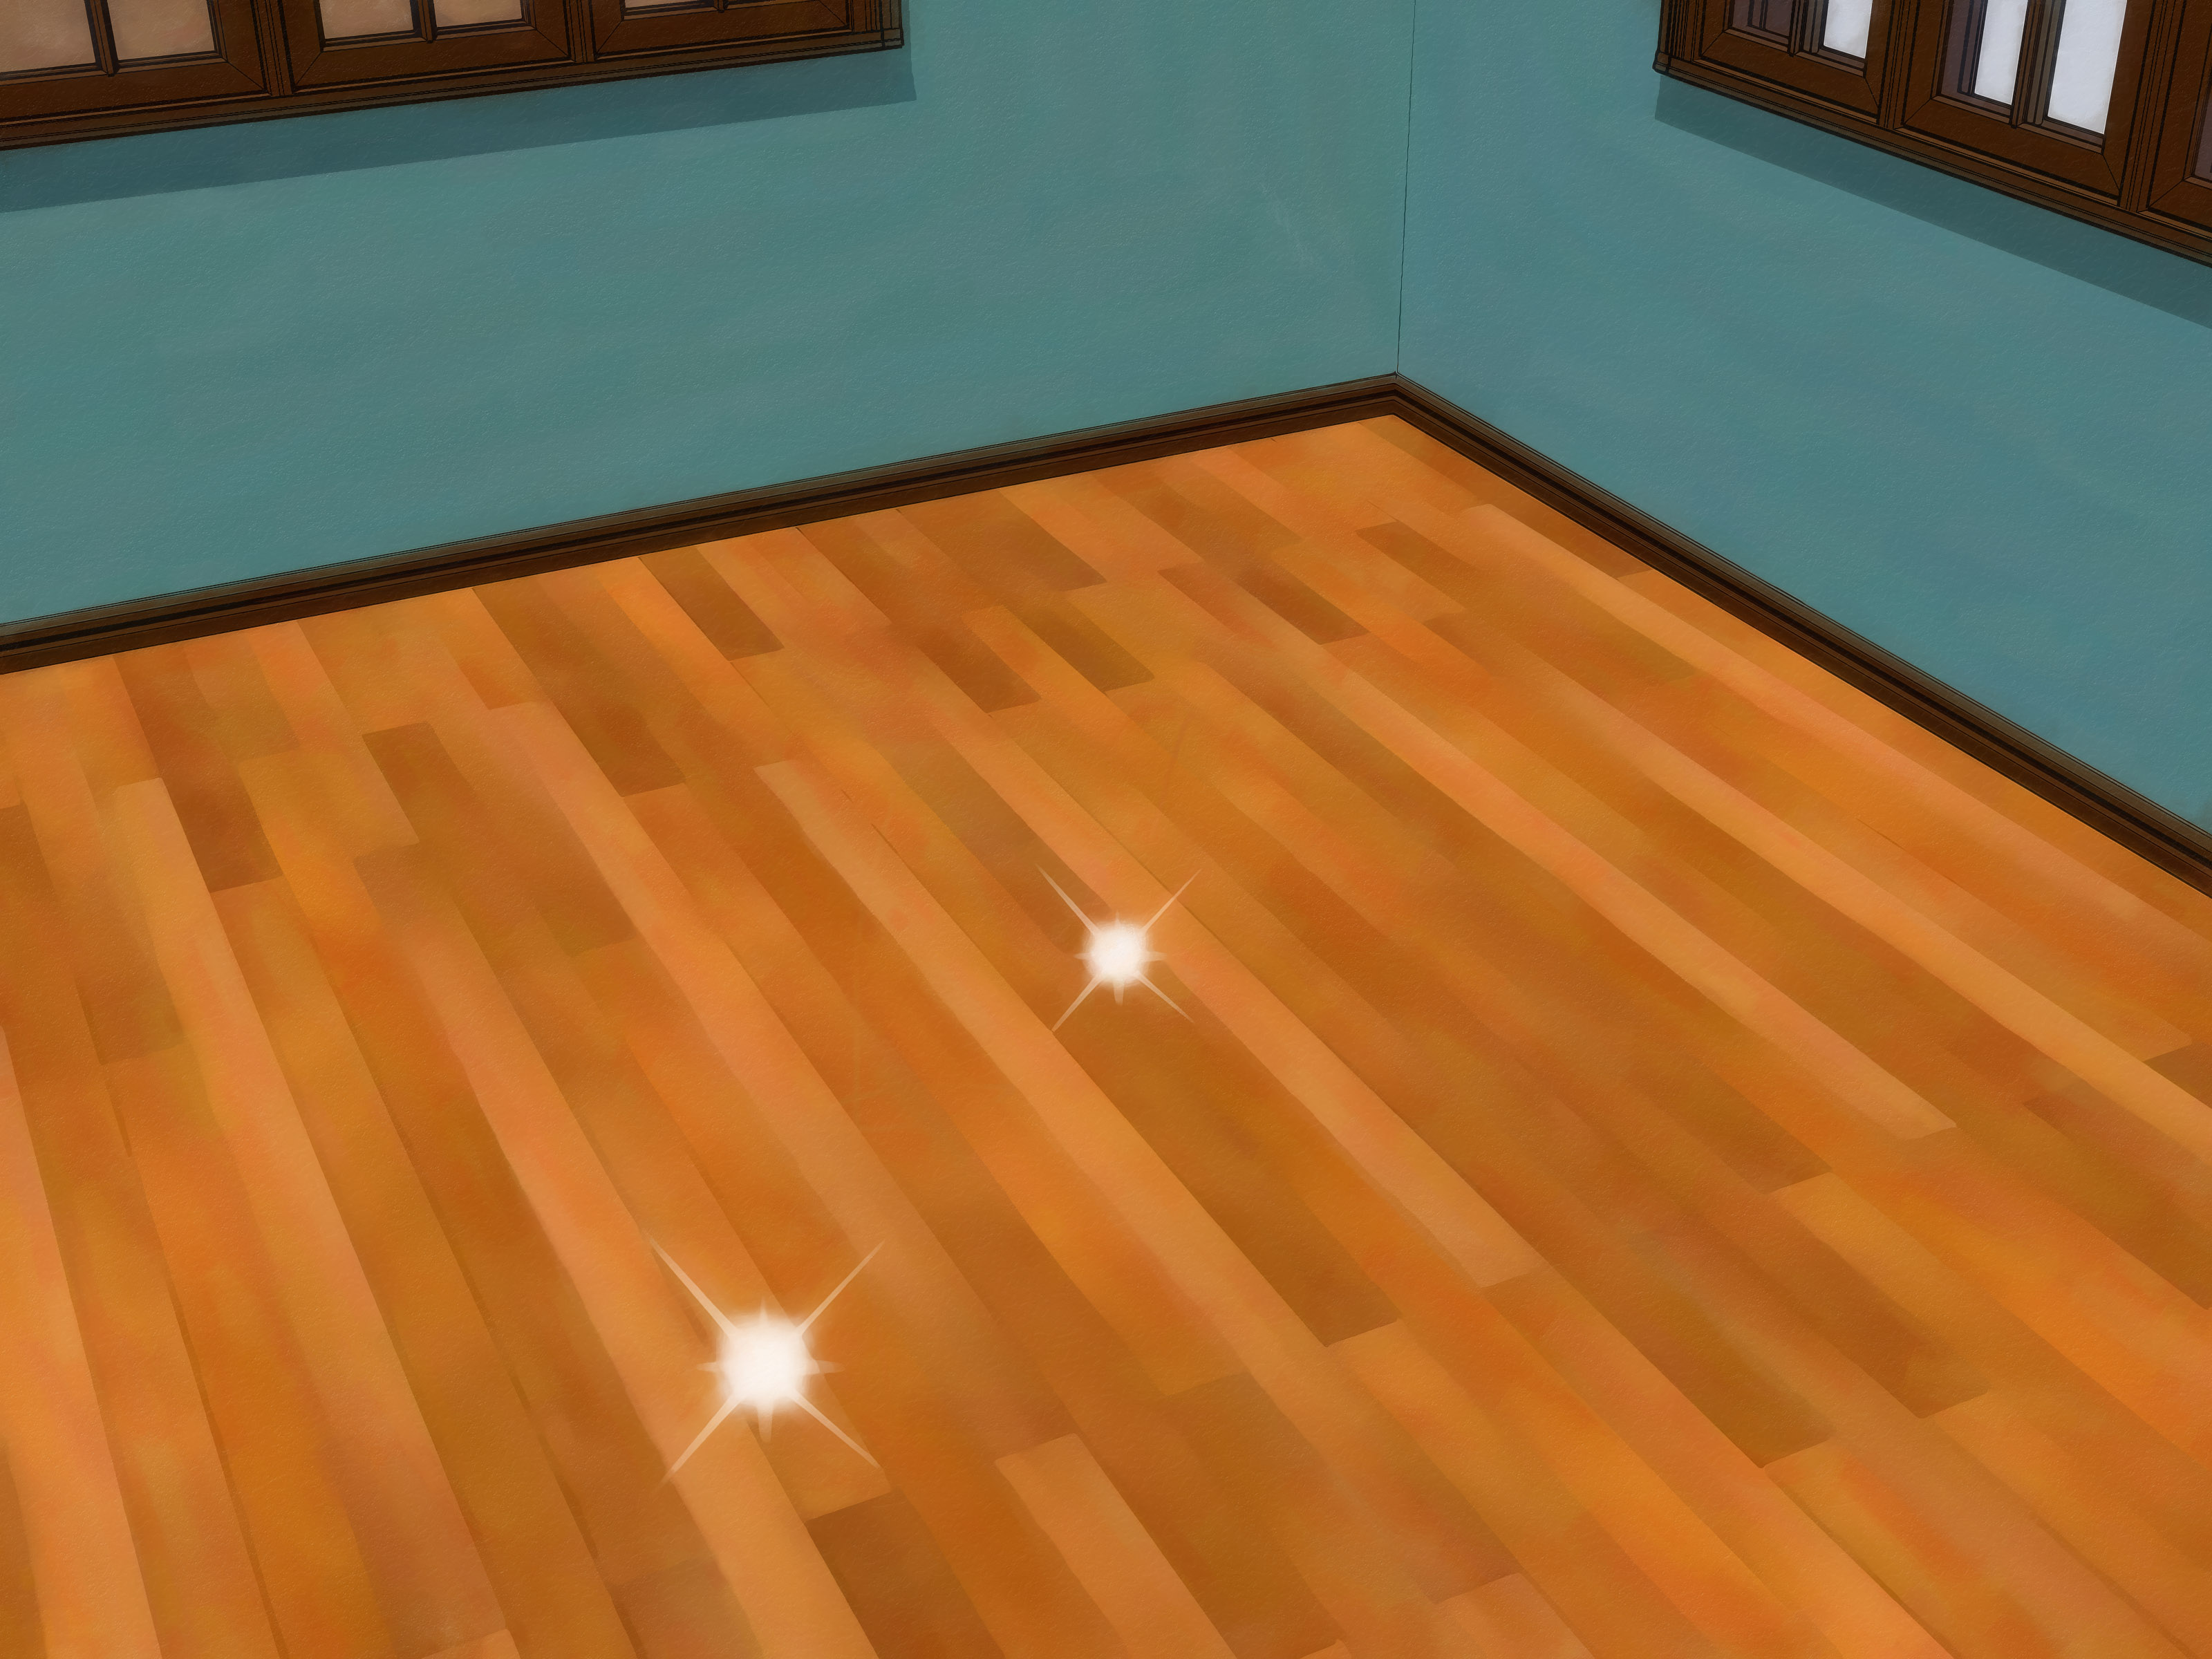 Parquet Adalah How To Polish Wood Floors 11 Steps With Pictures Wikihow